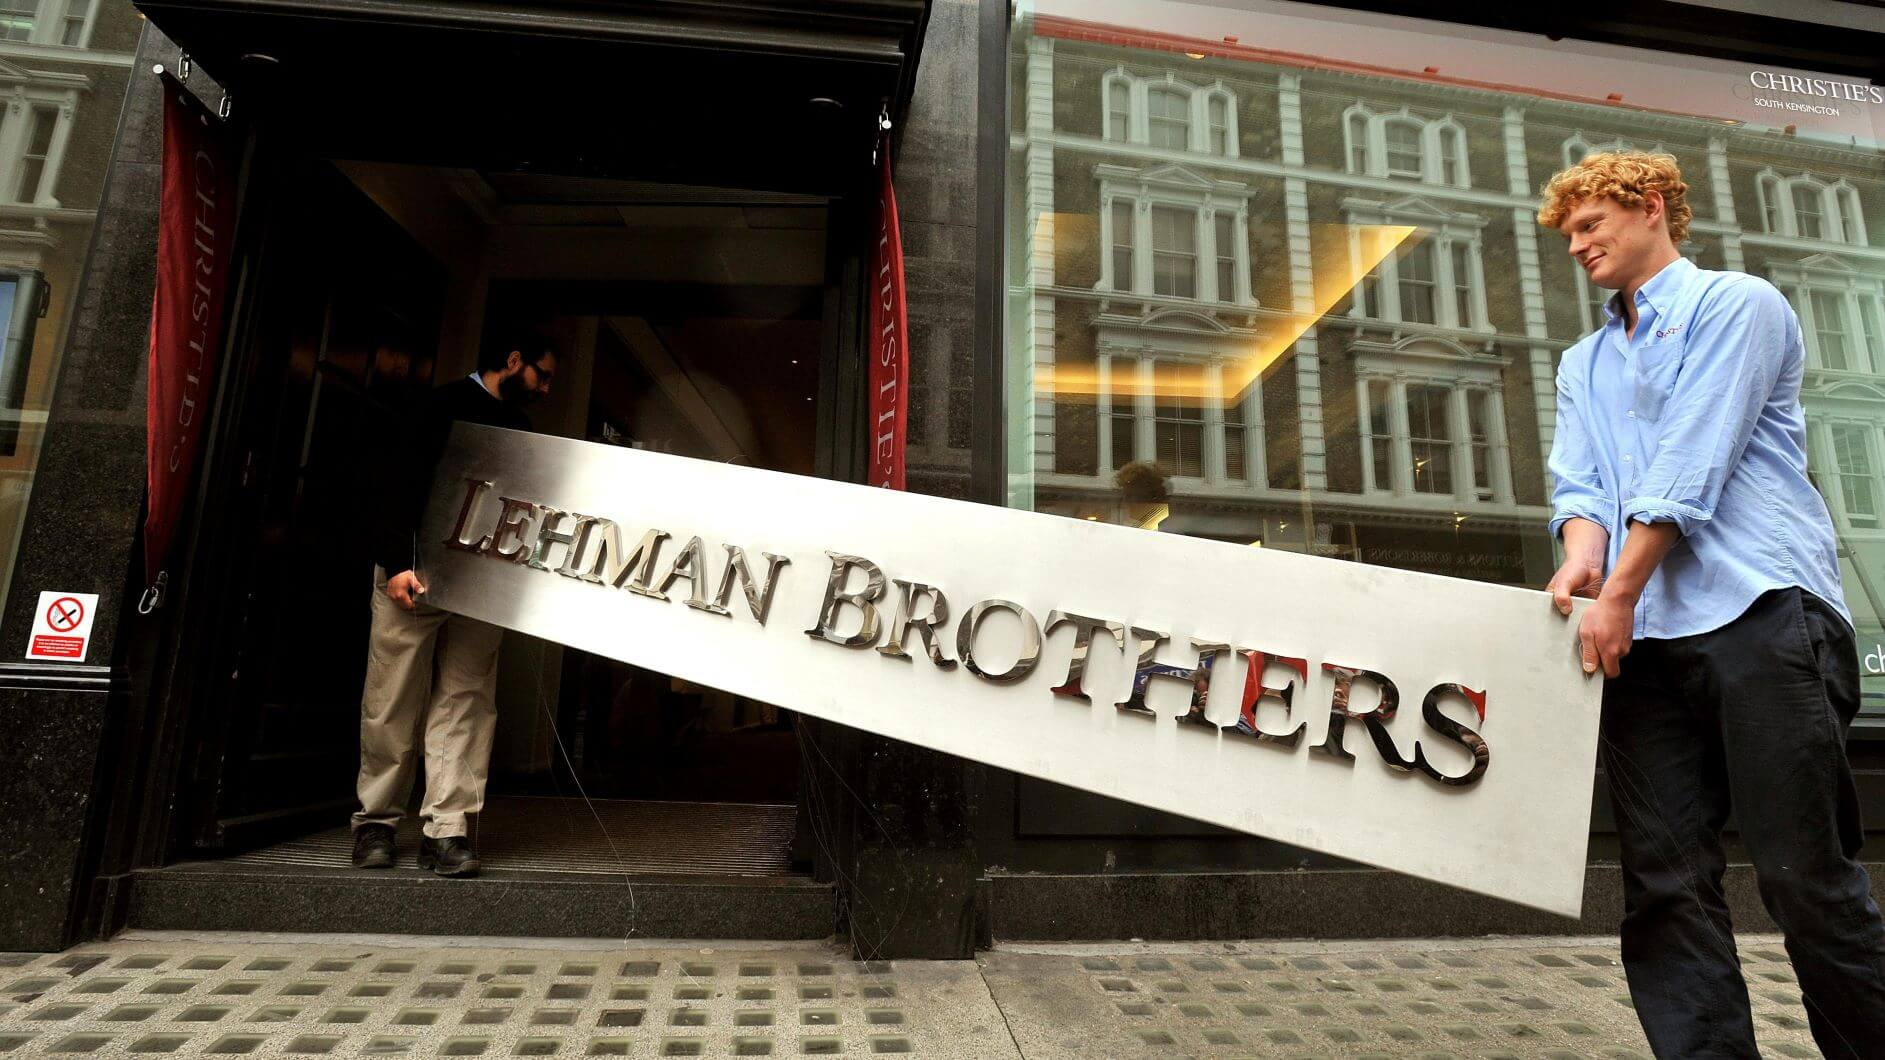 No-deal Brexit Like Lehman Brothers Collapse, Says Fiscal Watchdog